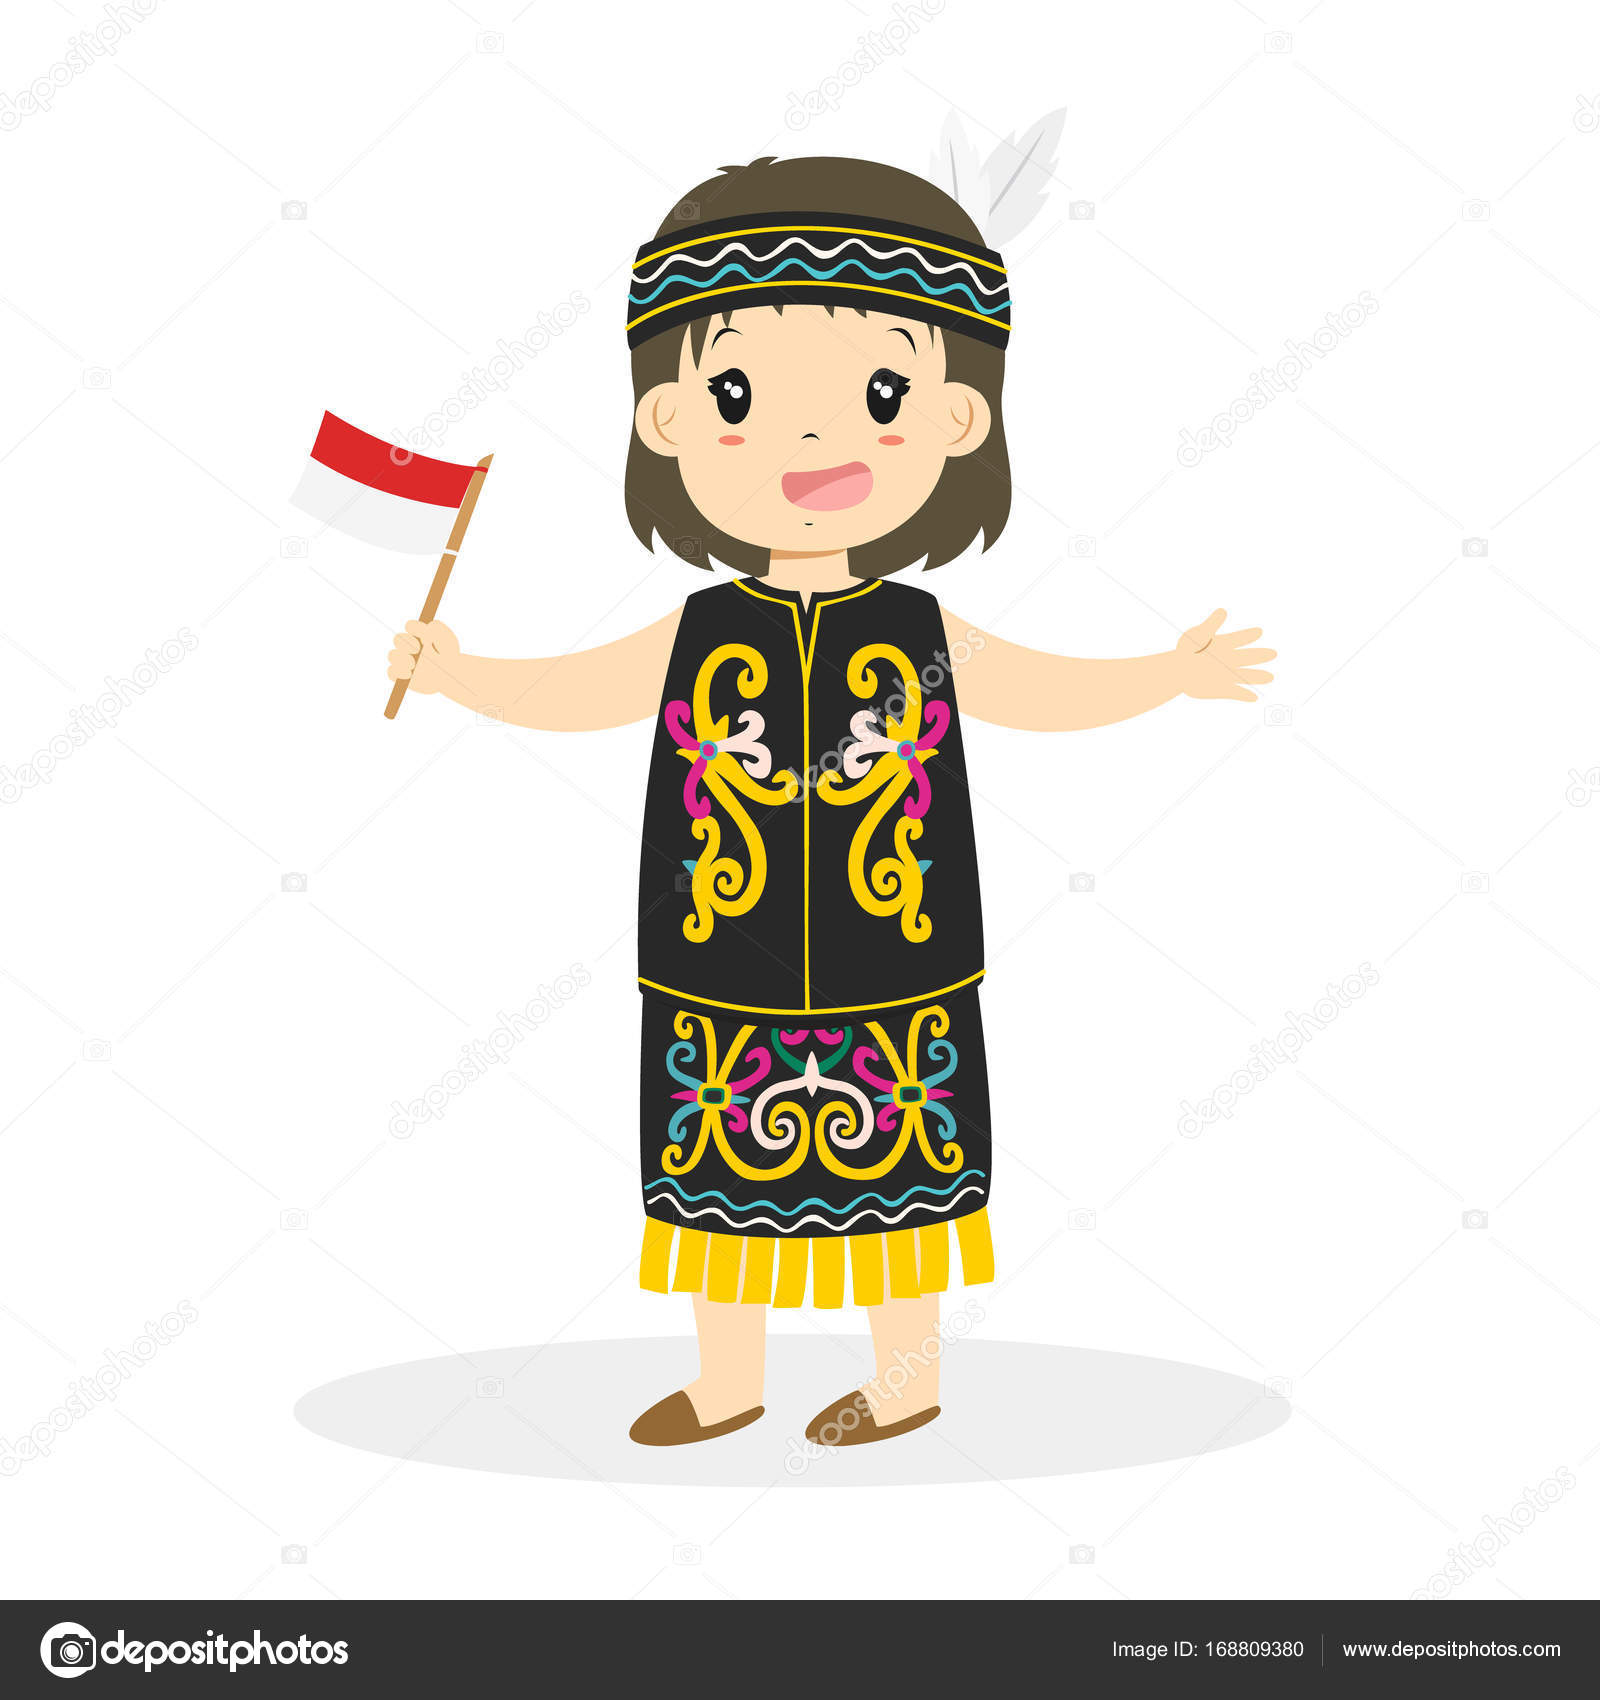 ᐈ indonesian flag cartoon stock vectors royalty free indonesian flag illustrations download on depositphotos ᐈ indonesian flag cartoon stock vectors royalty free indonesian flag illustrations download on depositphotos